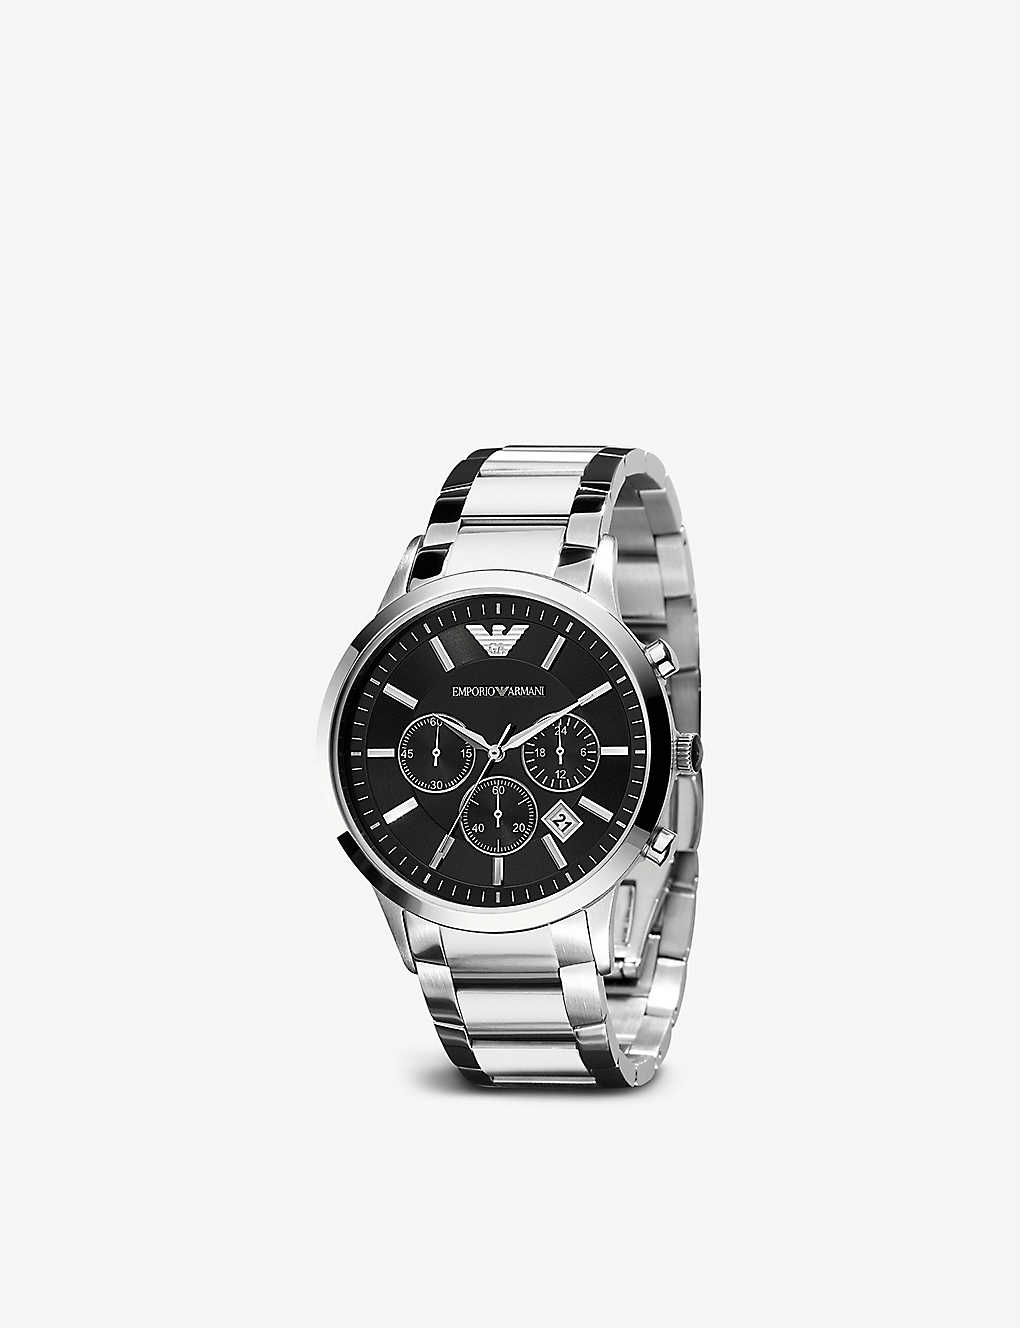 441abcff649e EMPORIO ARMANI SWISS - AR2434 stainless steel watch